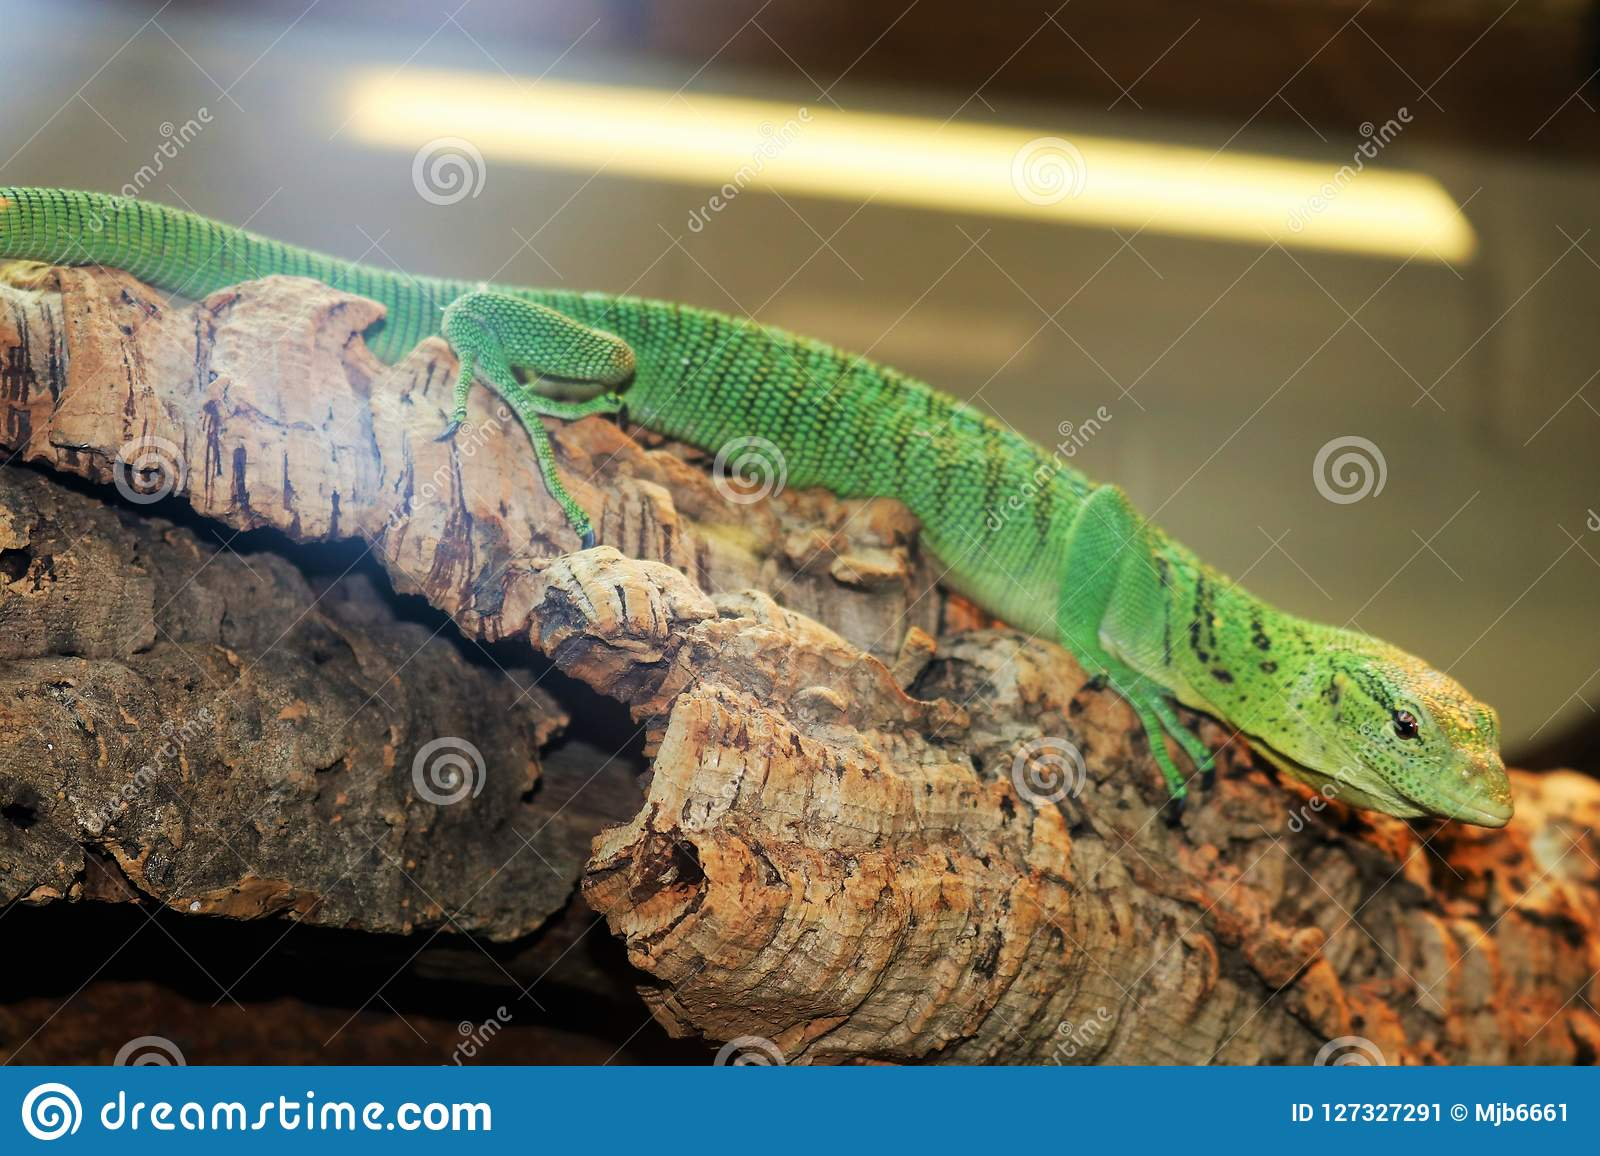 Green Anole lizard on branch at a tourist attraction